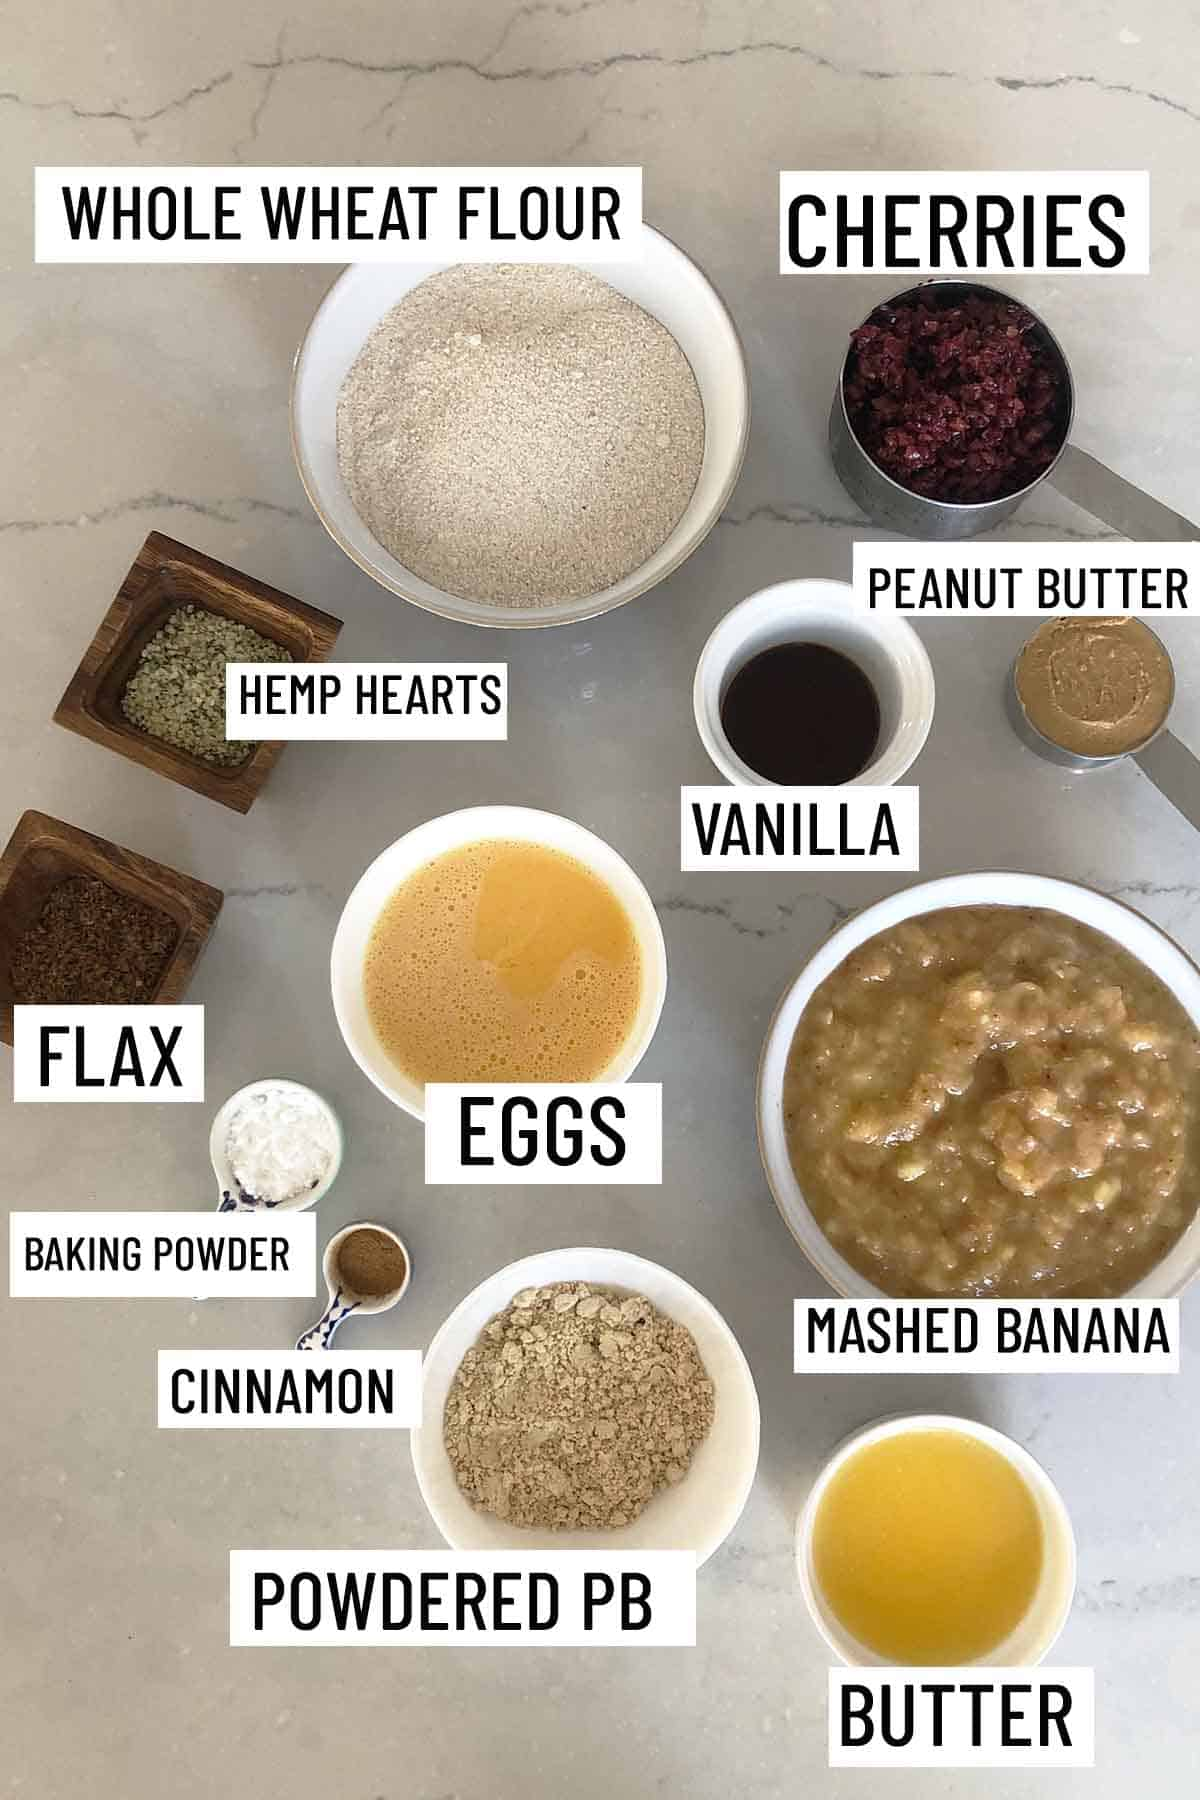 Birds eye view of portioned ingredients for recipes including butter, peanut butter, banana, cinnamon, baking powder, eggs, flax, hemp hearts, vanilla, cherries, and whole wheat flour.